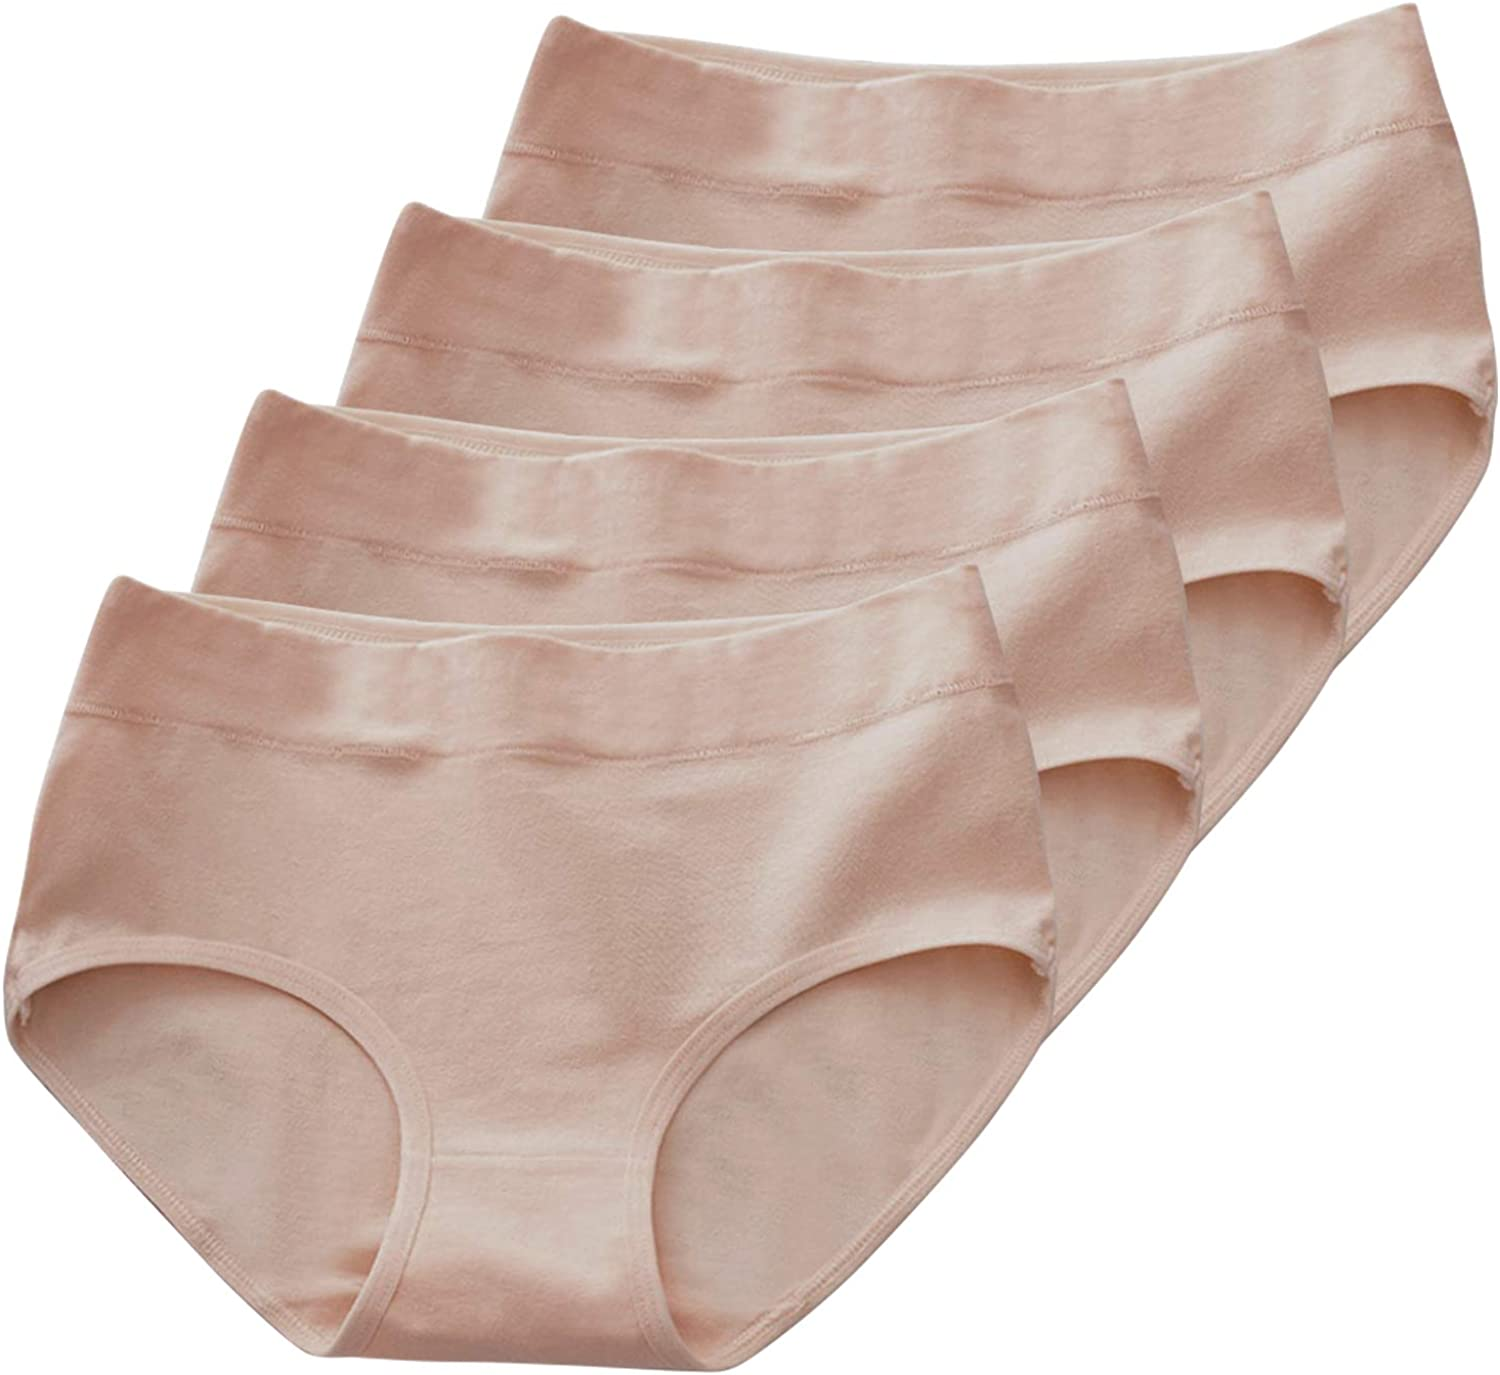 white short cotton underwear gift for her women/'s clothing by RedWings lingerie and knickers Panties undergarment